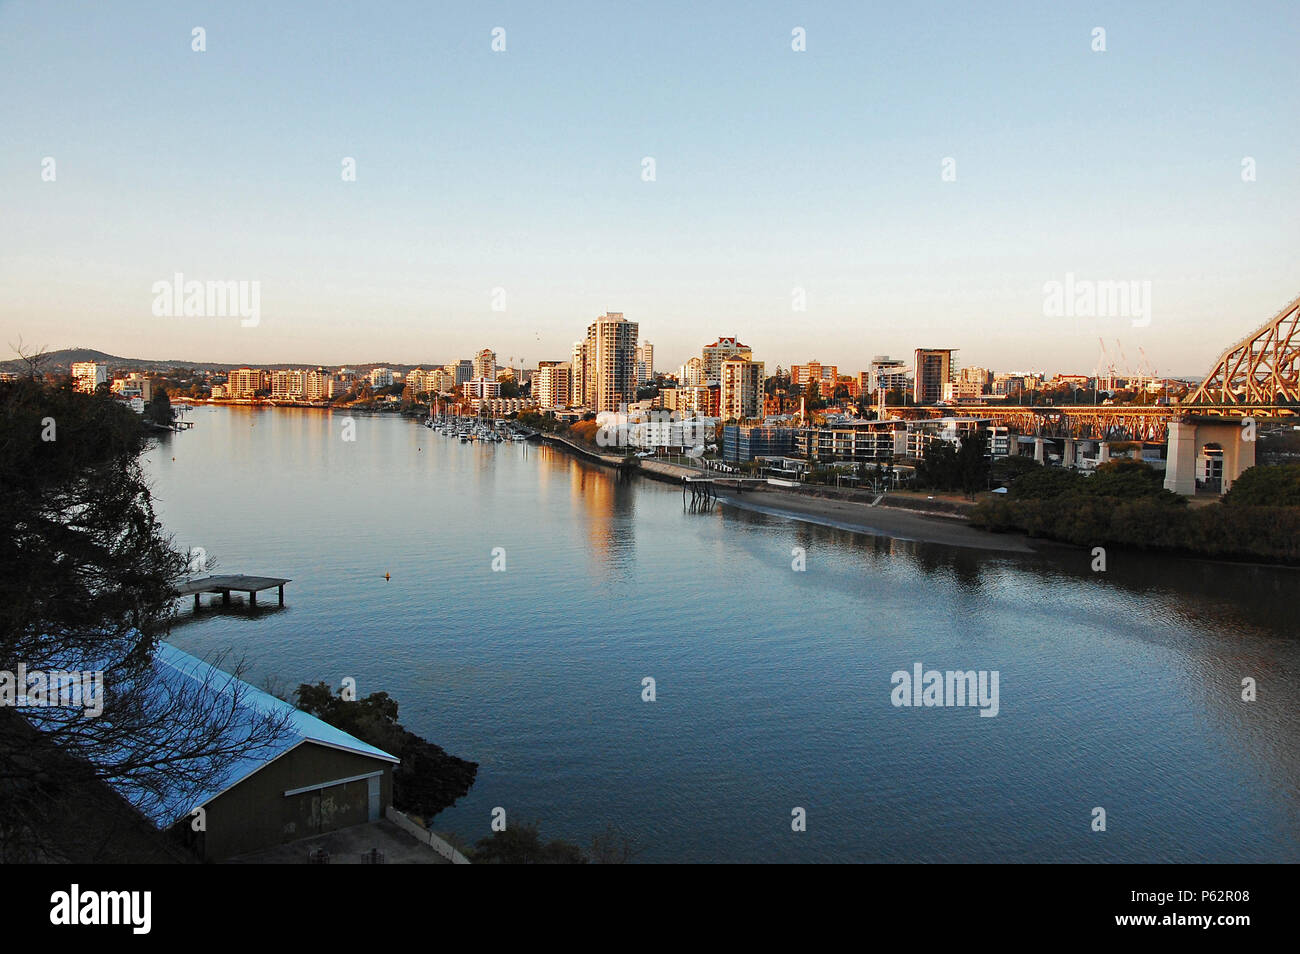 Brisbane River View - Stock Image